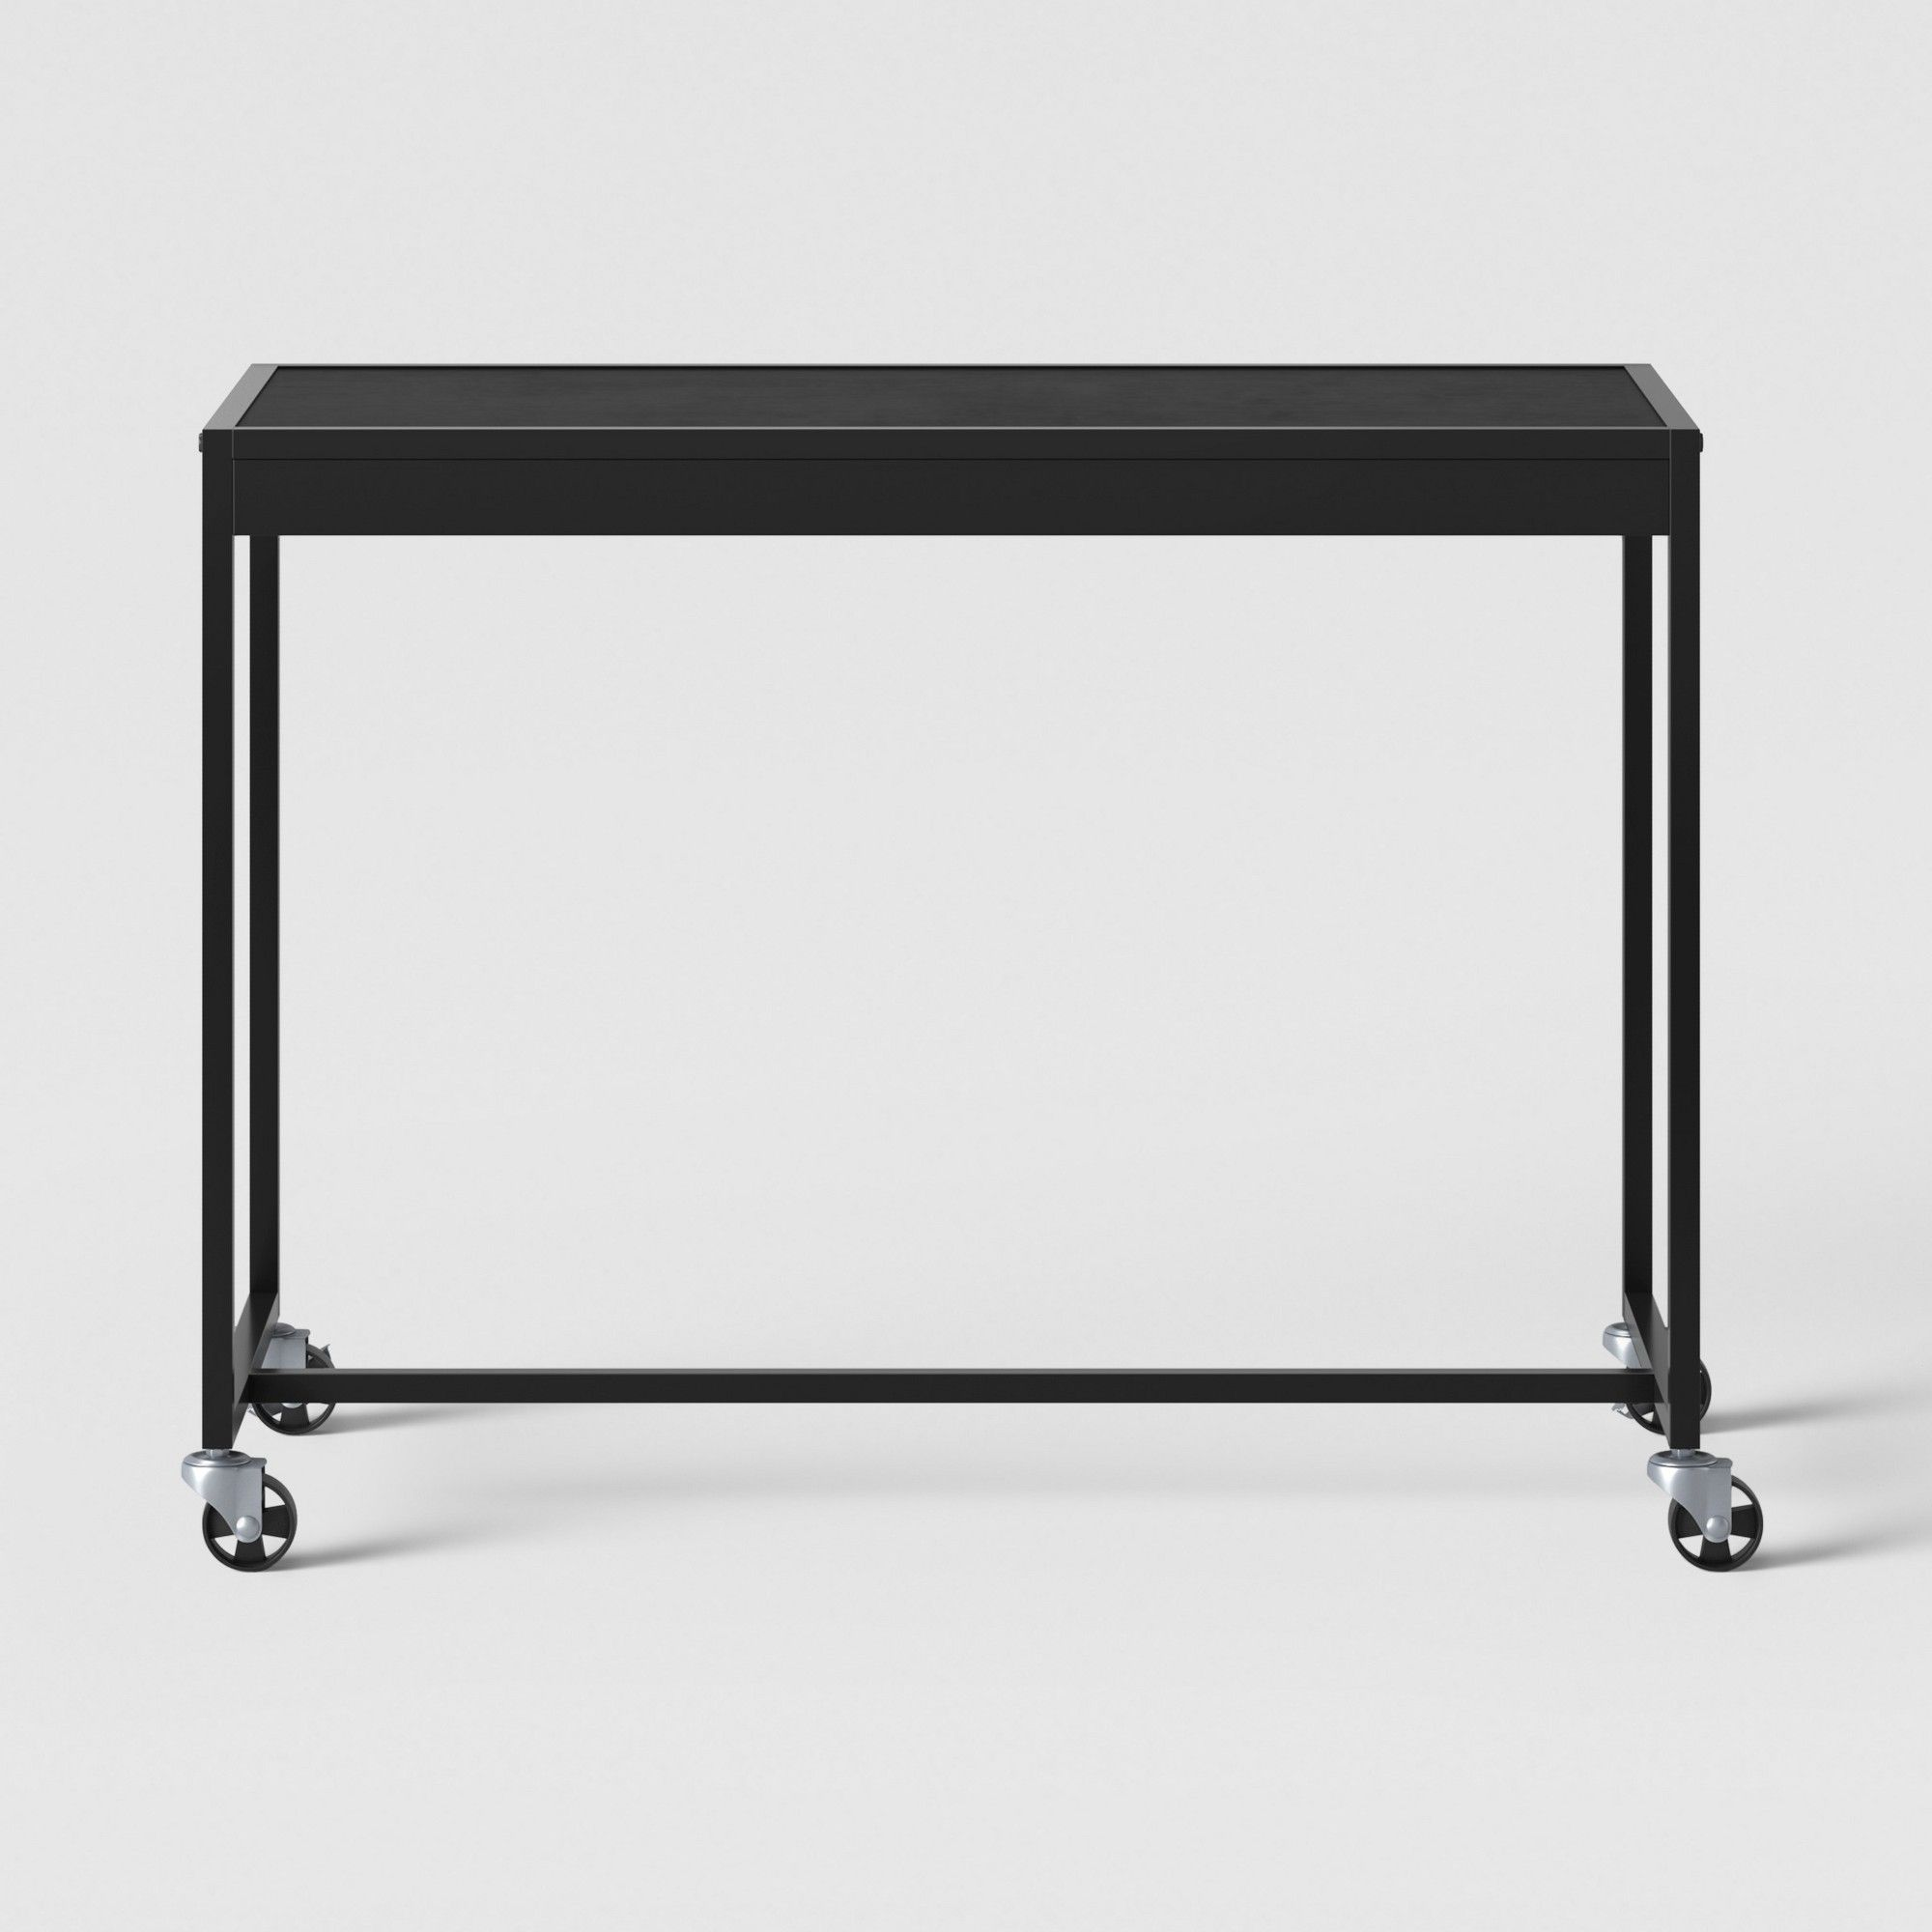 Pleasing Metal Rolling Desk Black Room Essentials Products Home Interior And Landscaping Oversignezvosmurscom